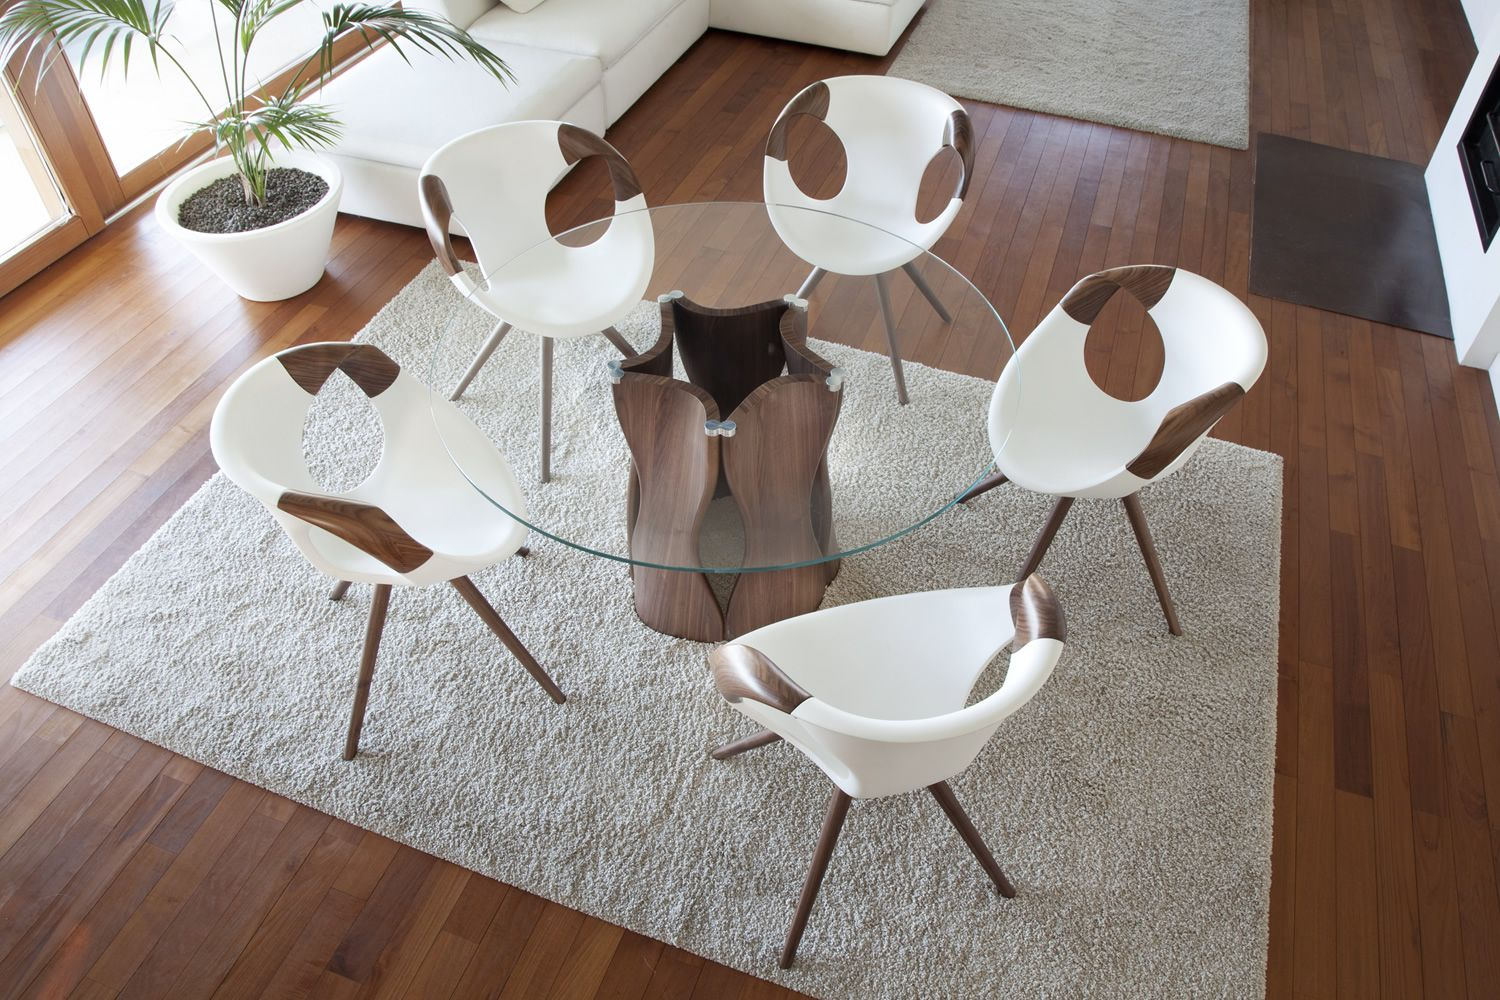 ... Up Chair Wooden Arms   Modern Chair With Wood Structure By Tonon ...